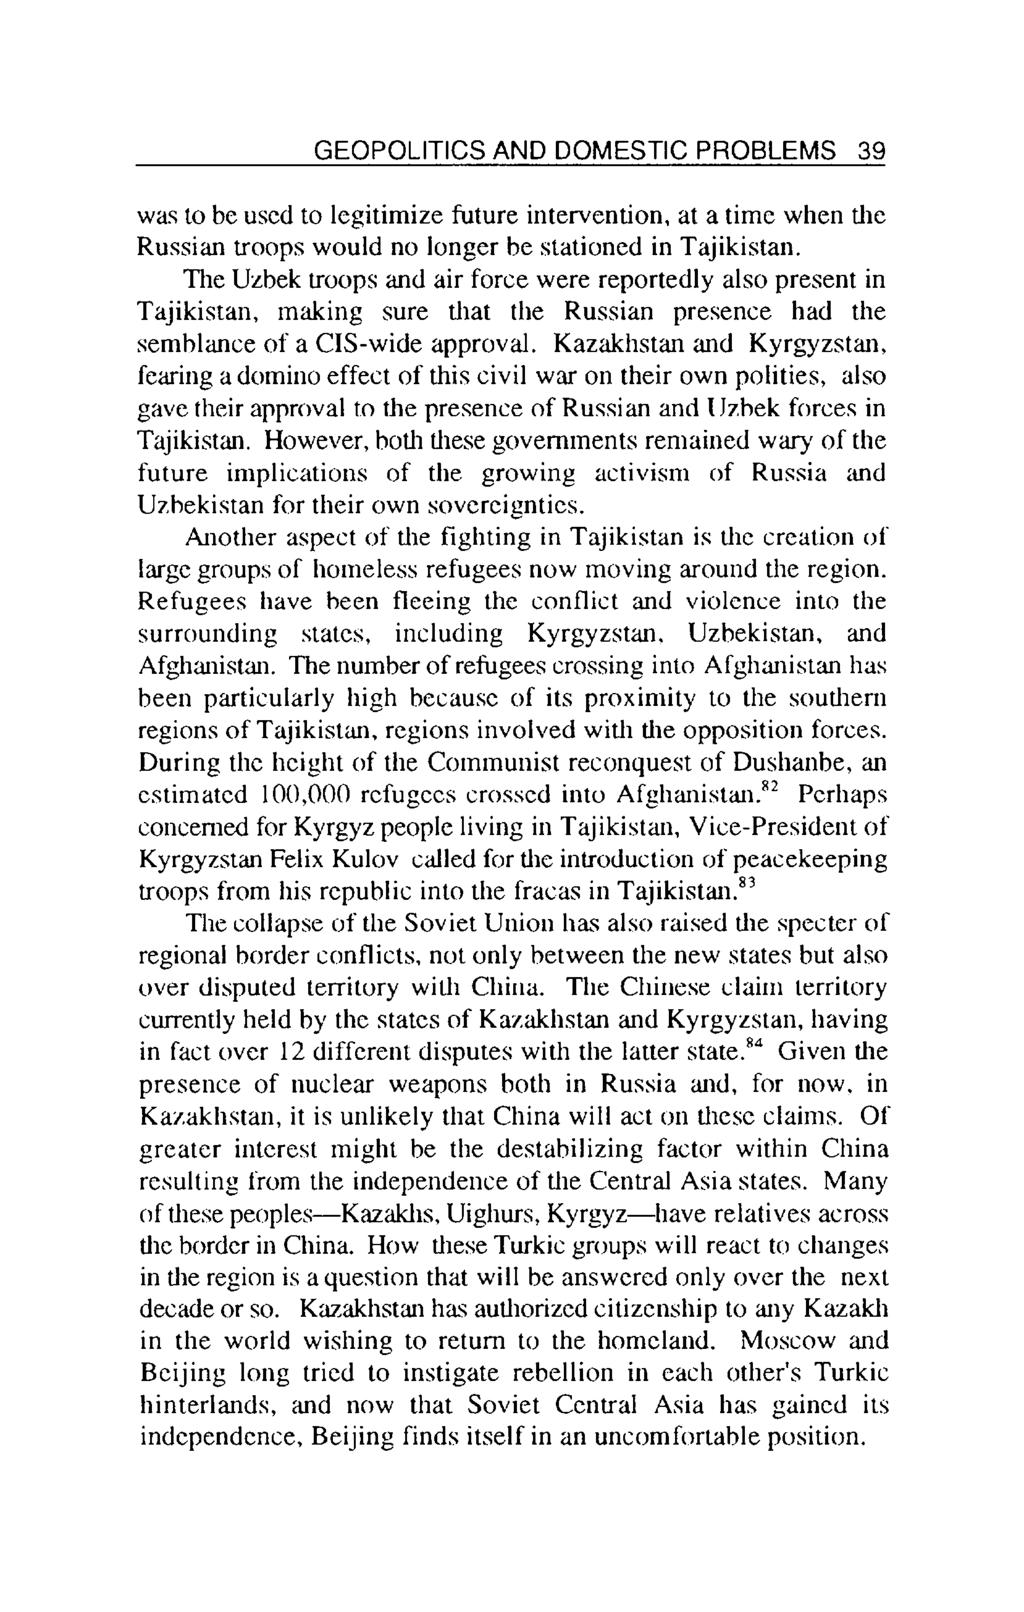 GEOPOLITICS AND DOMESTIC PROBLEMS 39 was to be used to legitimize future intervention, at a time when the Russian troops would no longer be stationed in Tajikistan.